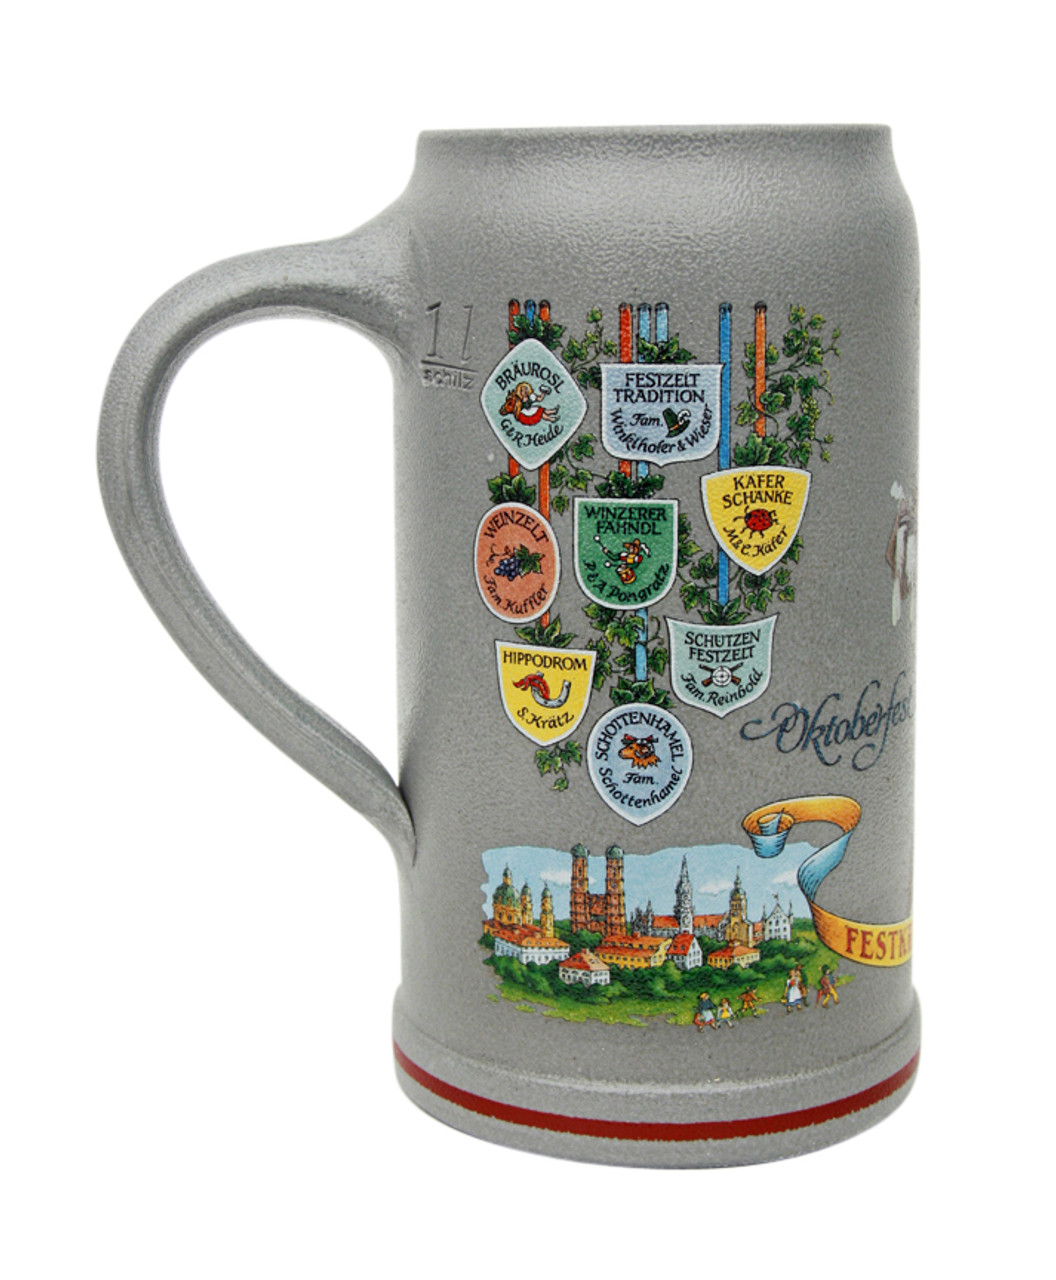 Beer Tent Logos on Right Side of Official 2011 Oktoberfest Wirtekrug 1L Beer Mug